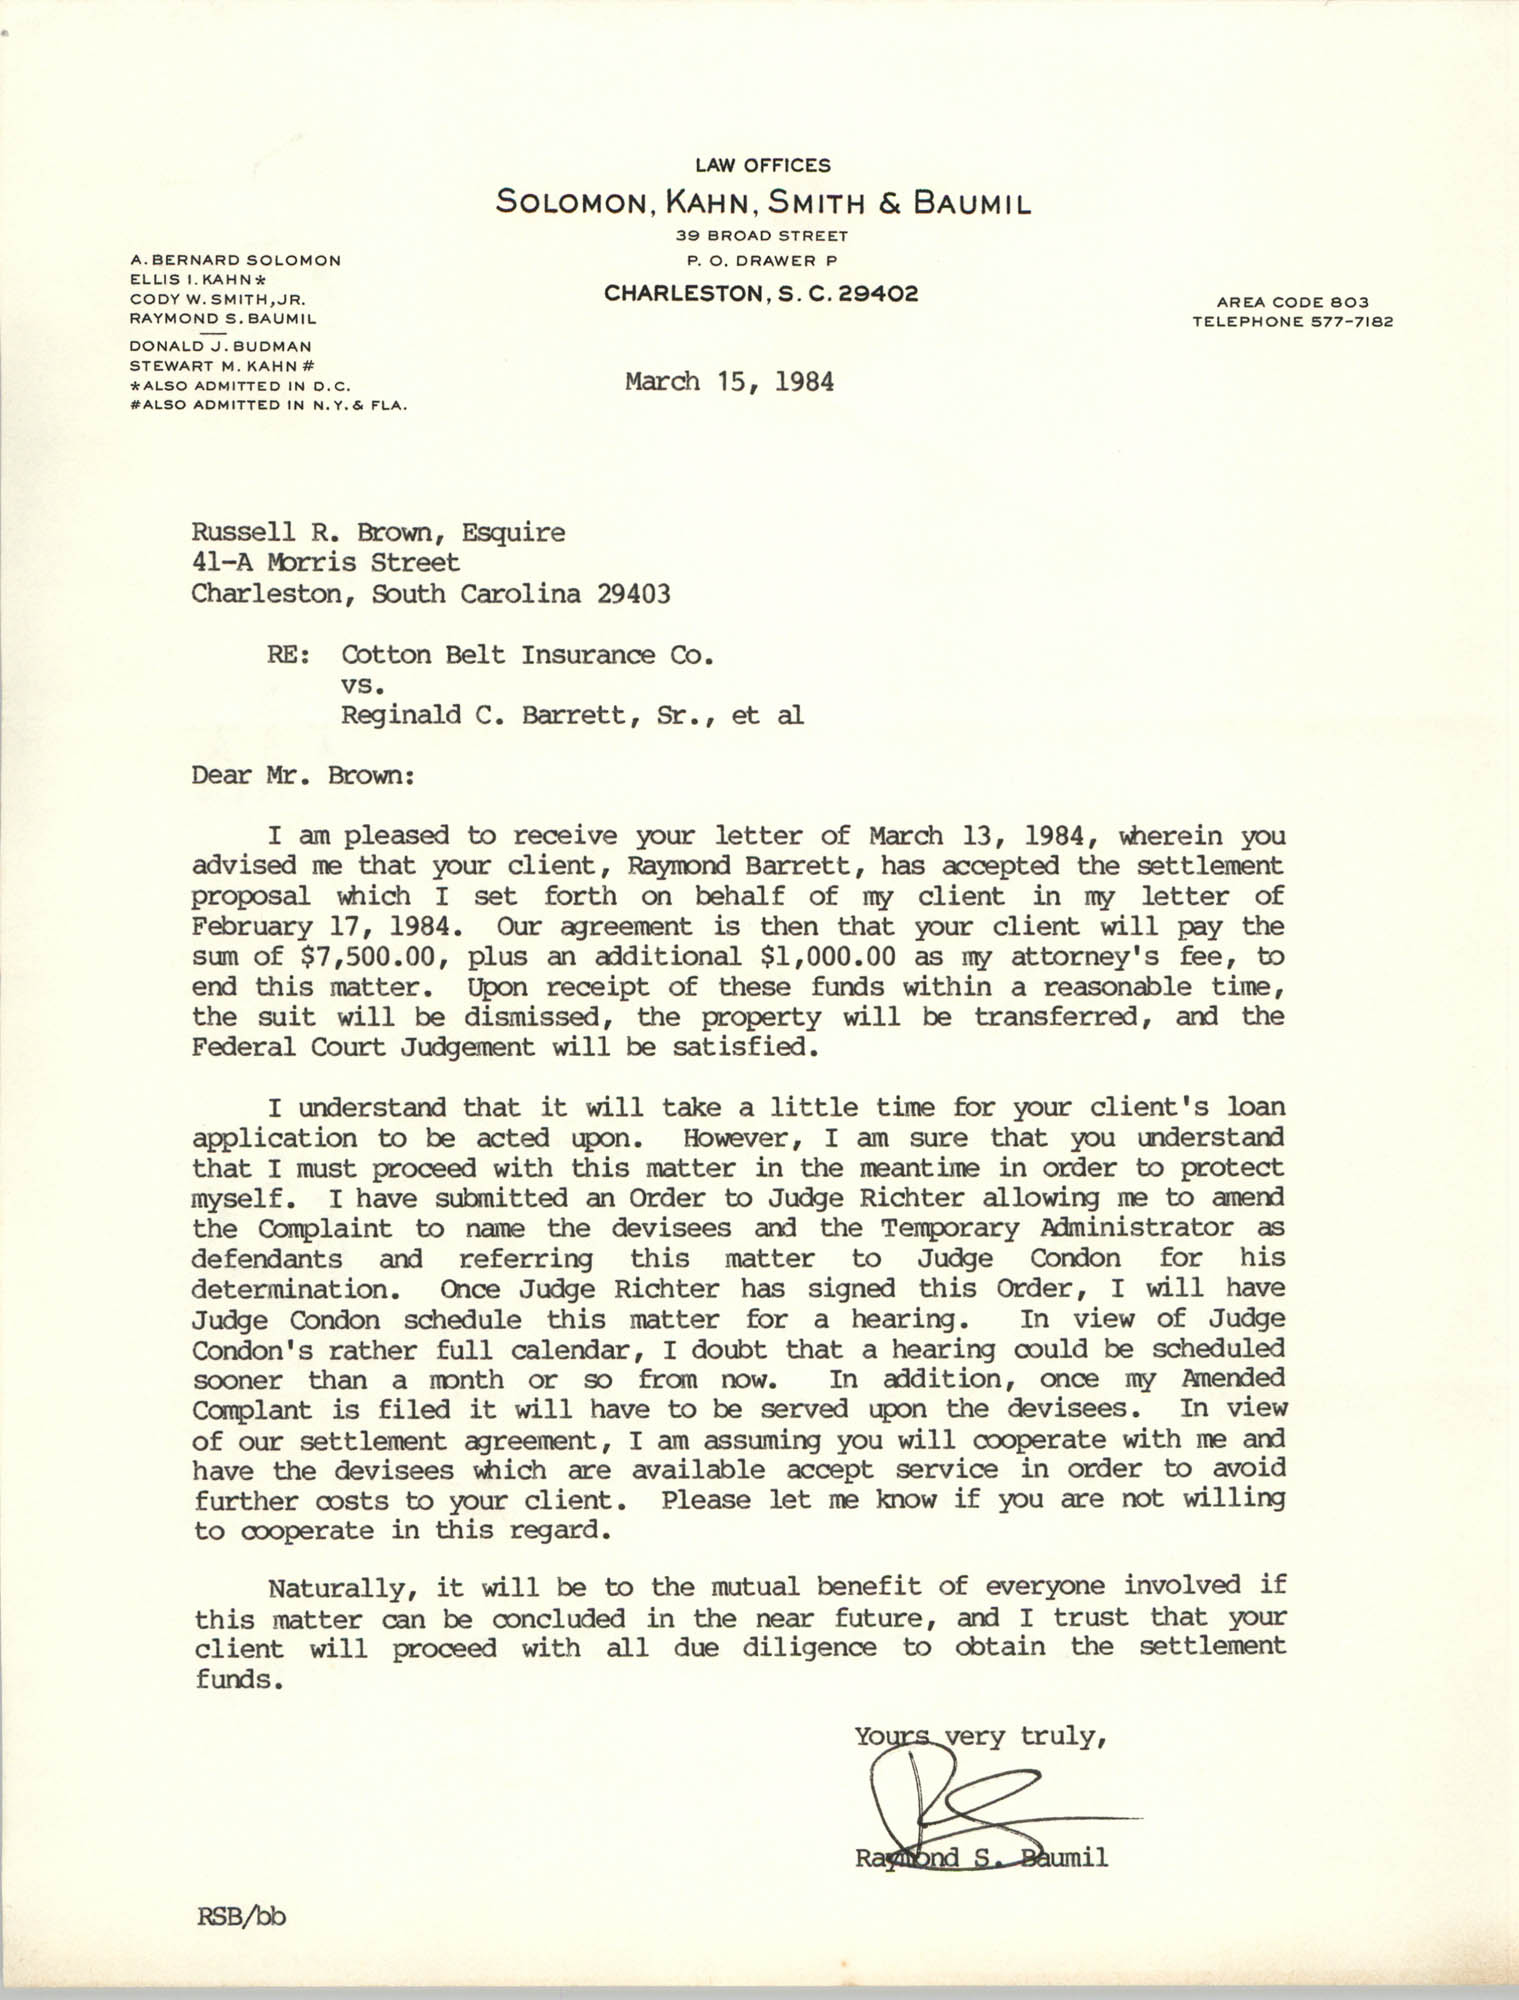 Letter from Raymond S. Baumil to Russell Brown, March 15, 1984